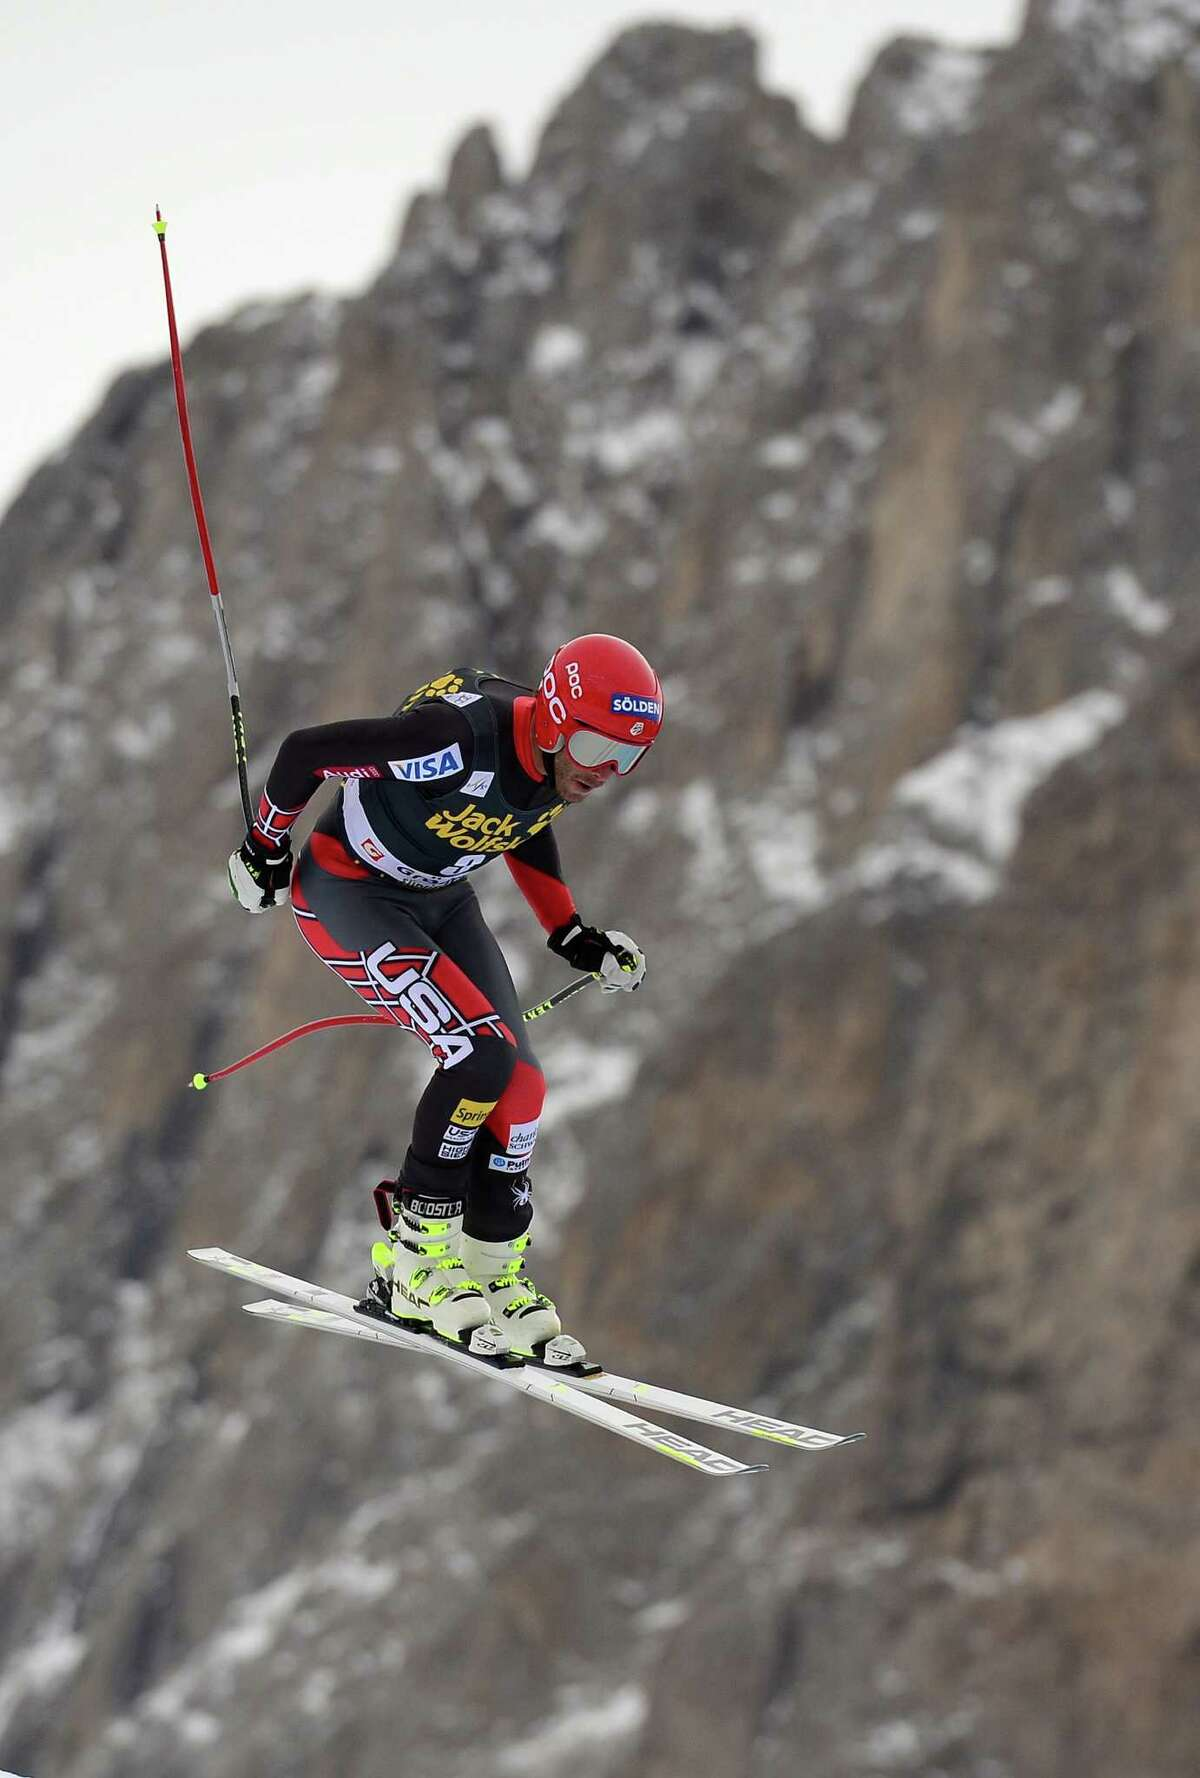 Bode Miller of the US competes during the second training session of the FIS Alpine World Cup Men's Downhill on December 19, 2013 in Val Gardena. AFP PHOTO / OLIVIER MORINOLIVIER MORIN/AFP/Getty Images ORG XMIT: -